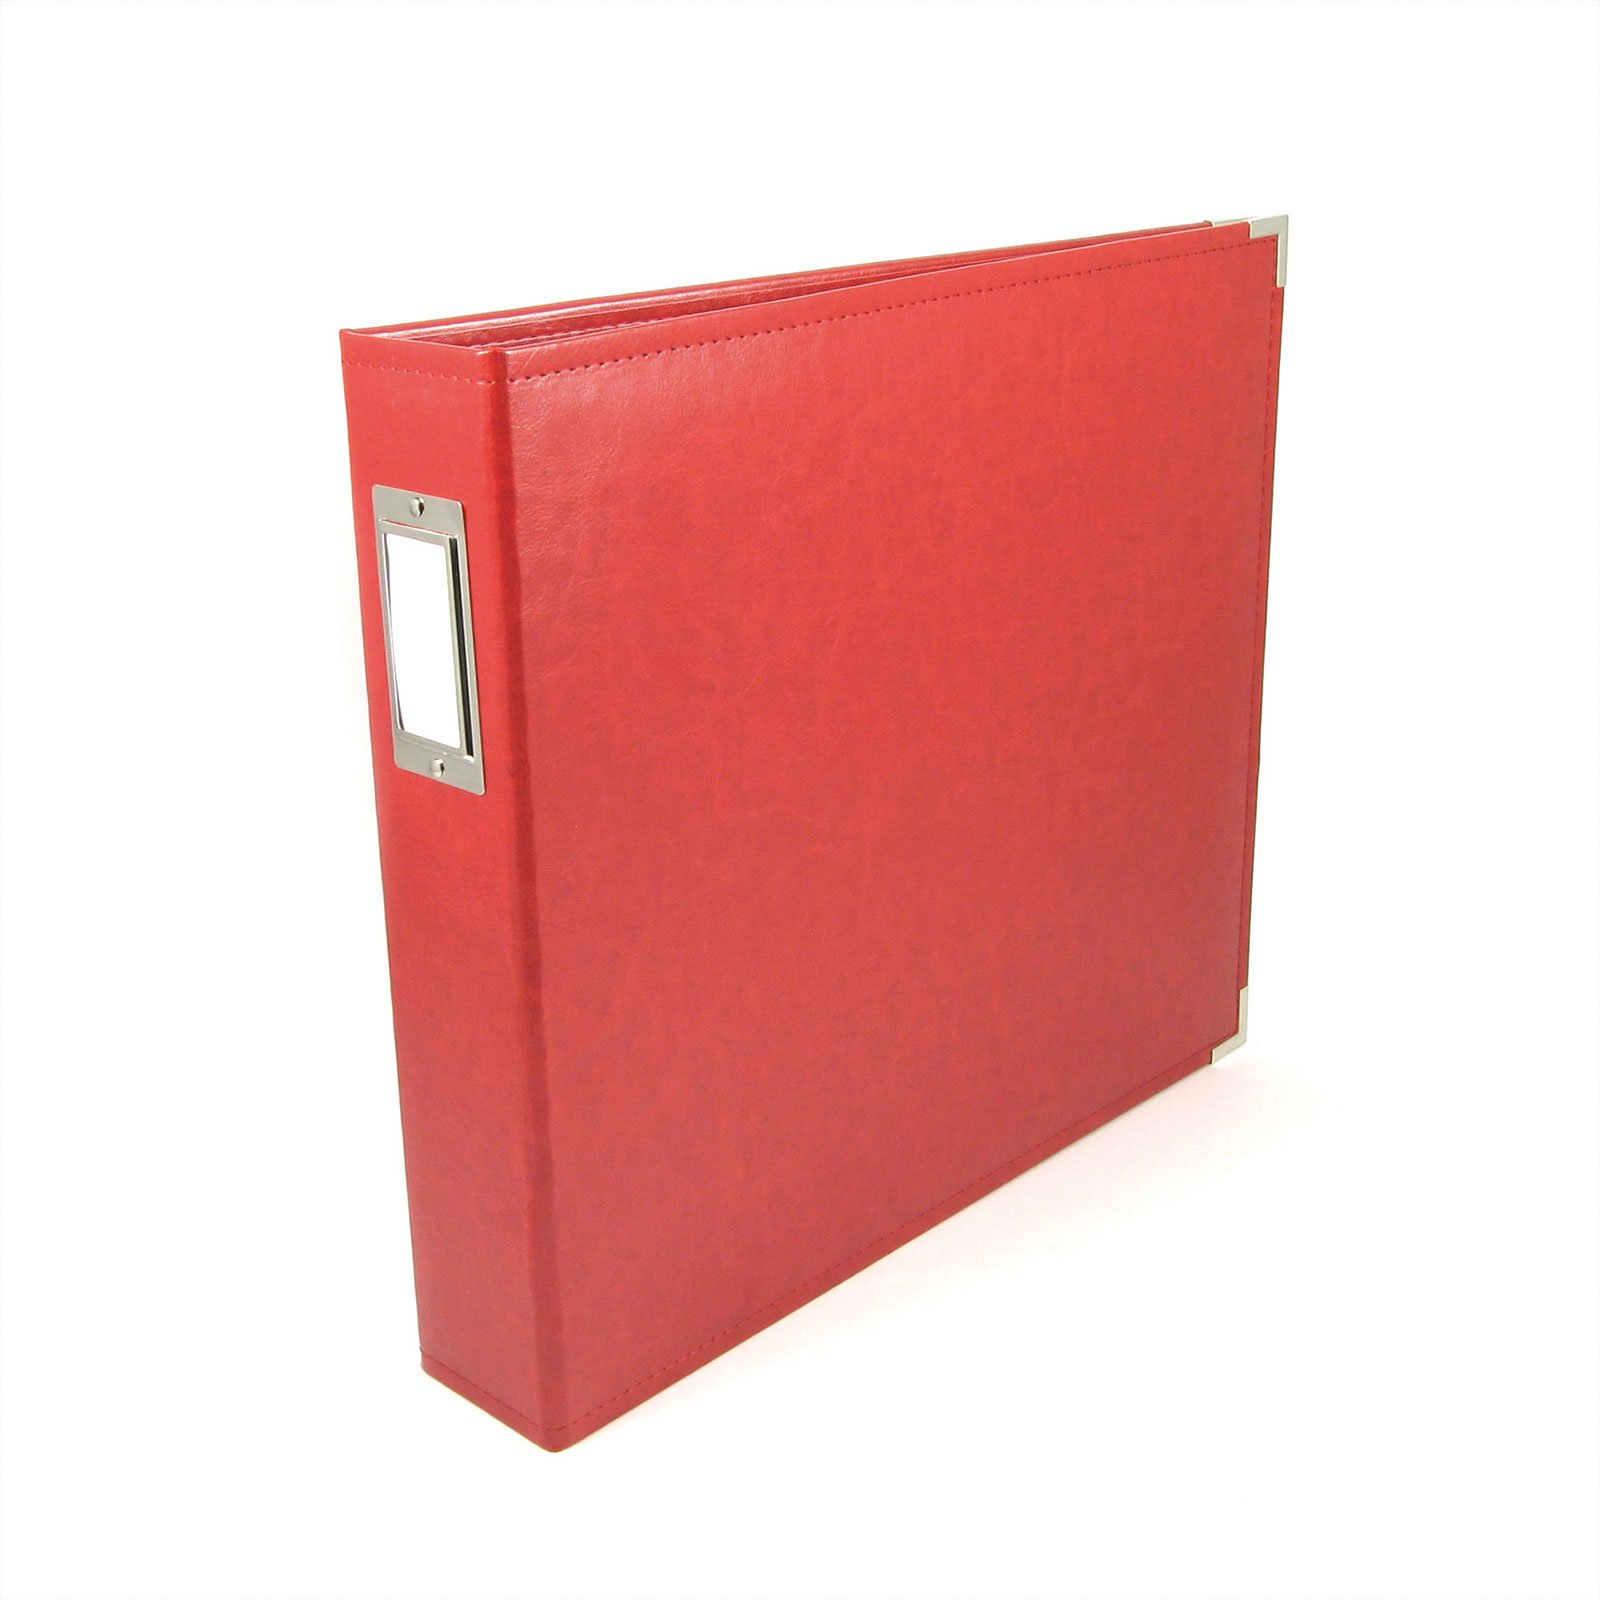 We R Memory Keepers 12x12 Album-Real Red